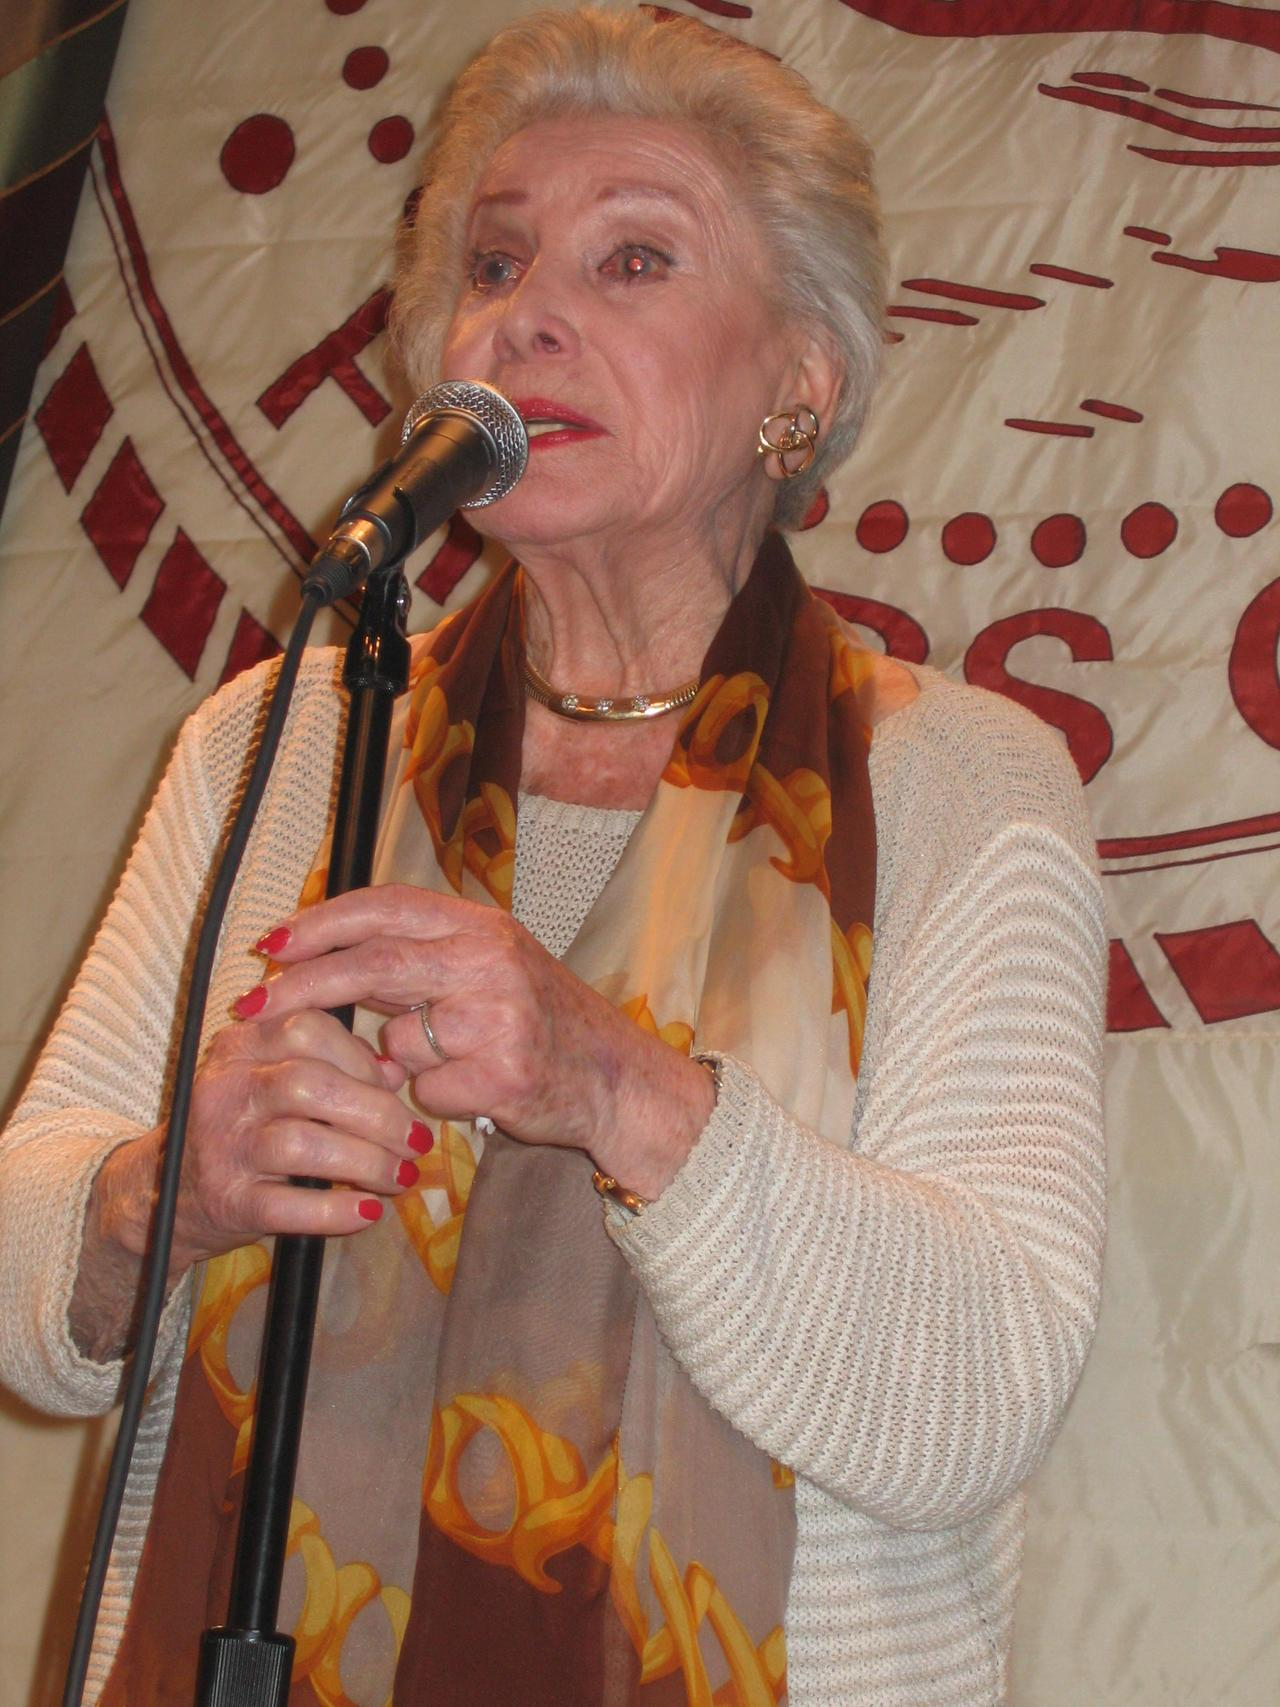 Jean Caroll, speaking at the Friar's Club in NYC, November 2006